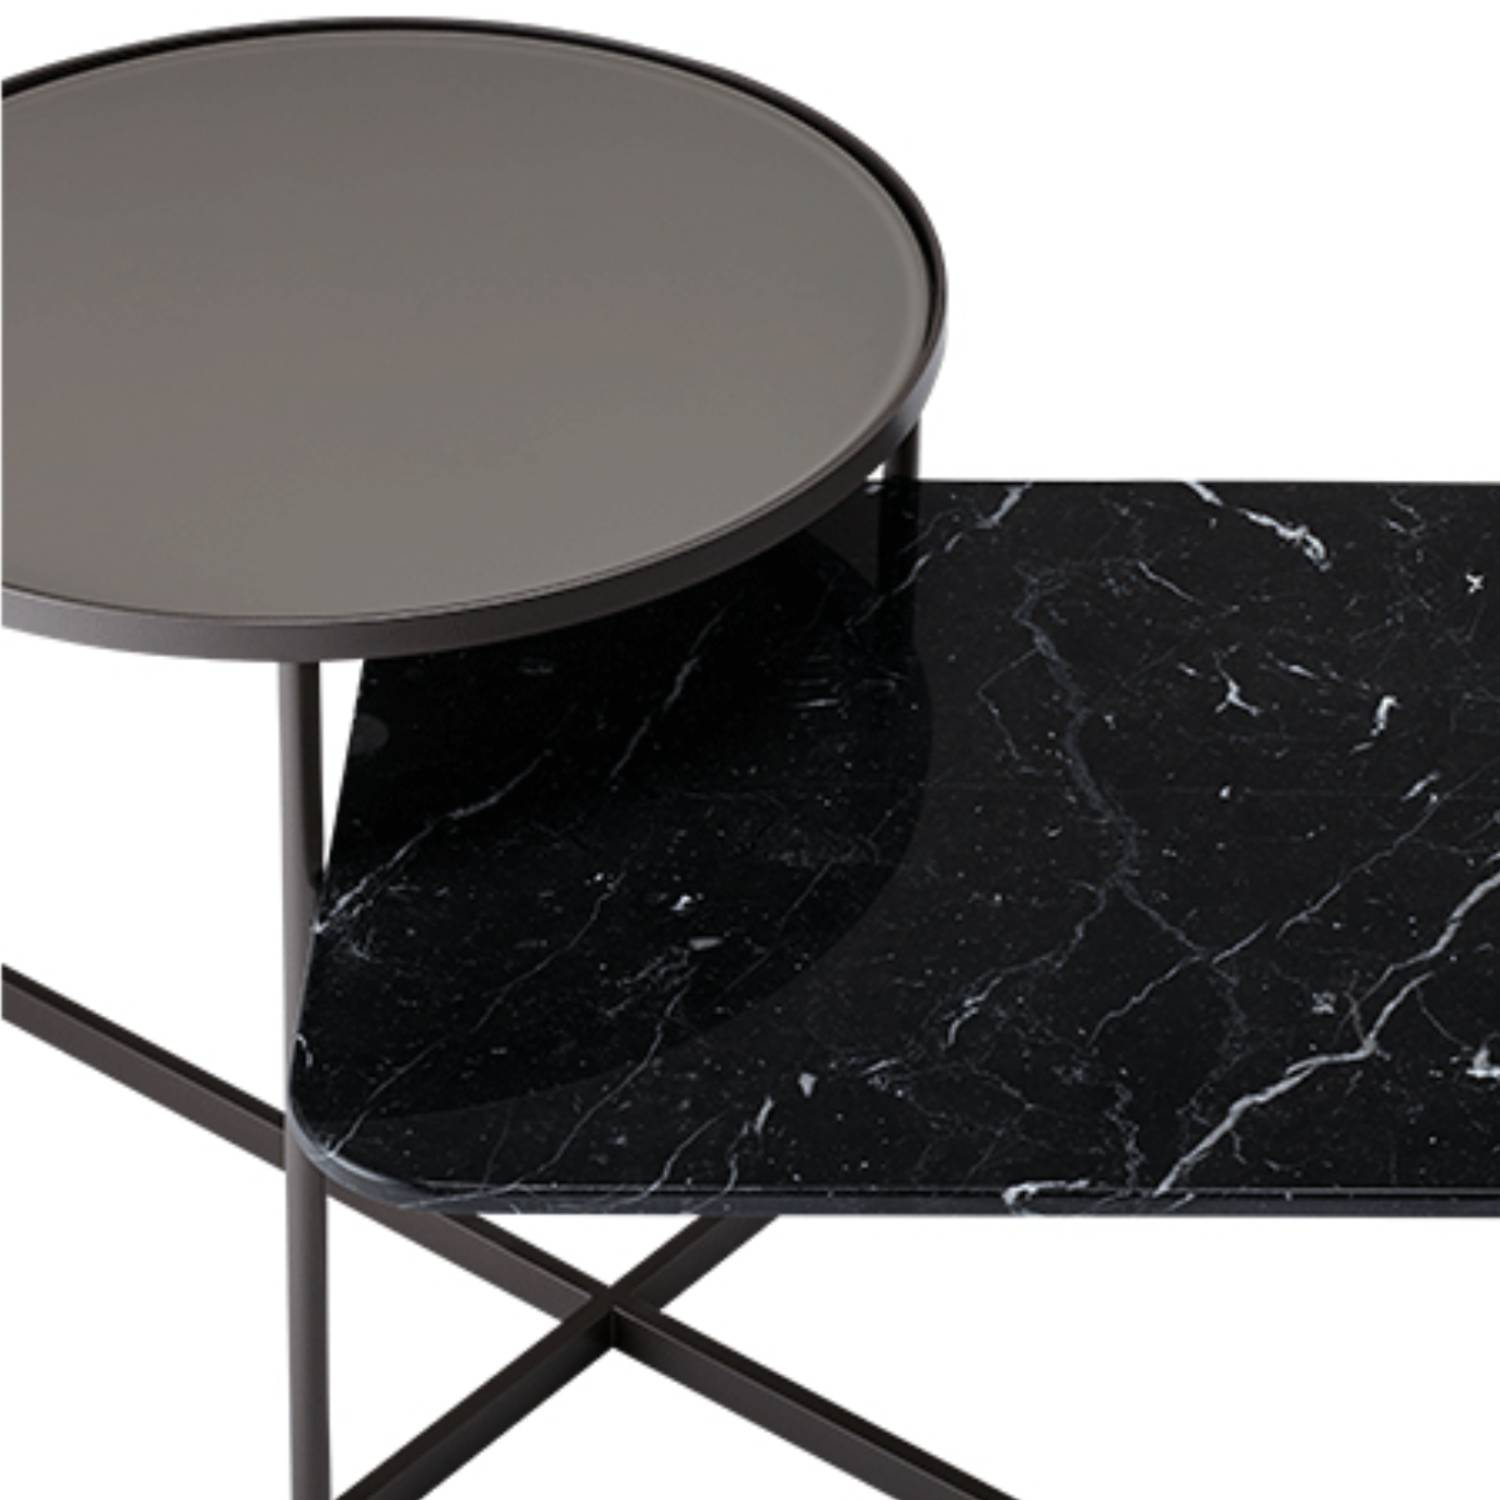 Mohana Side Table Medium: Pewter Frame + Grey Etched Glass + Black Marble